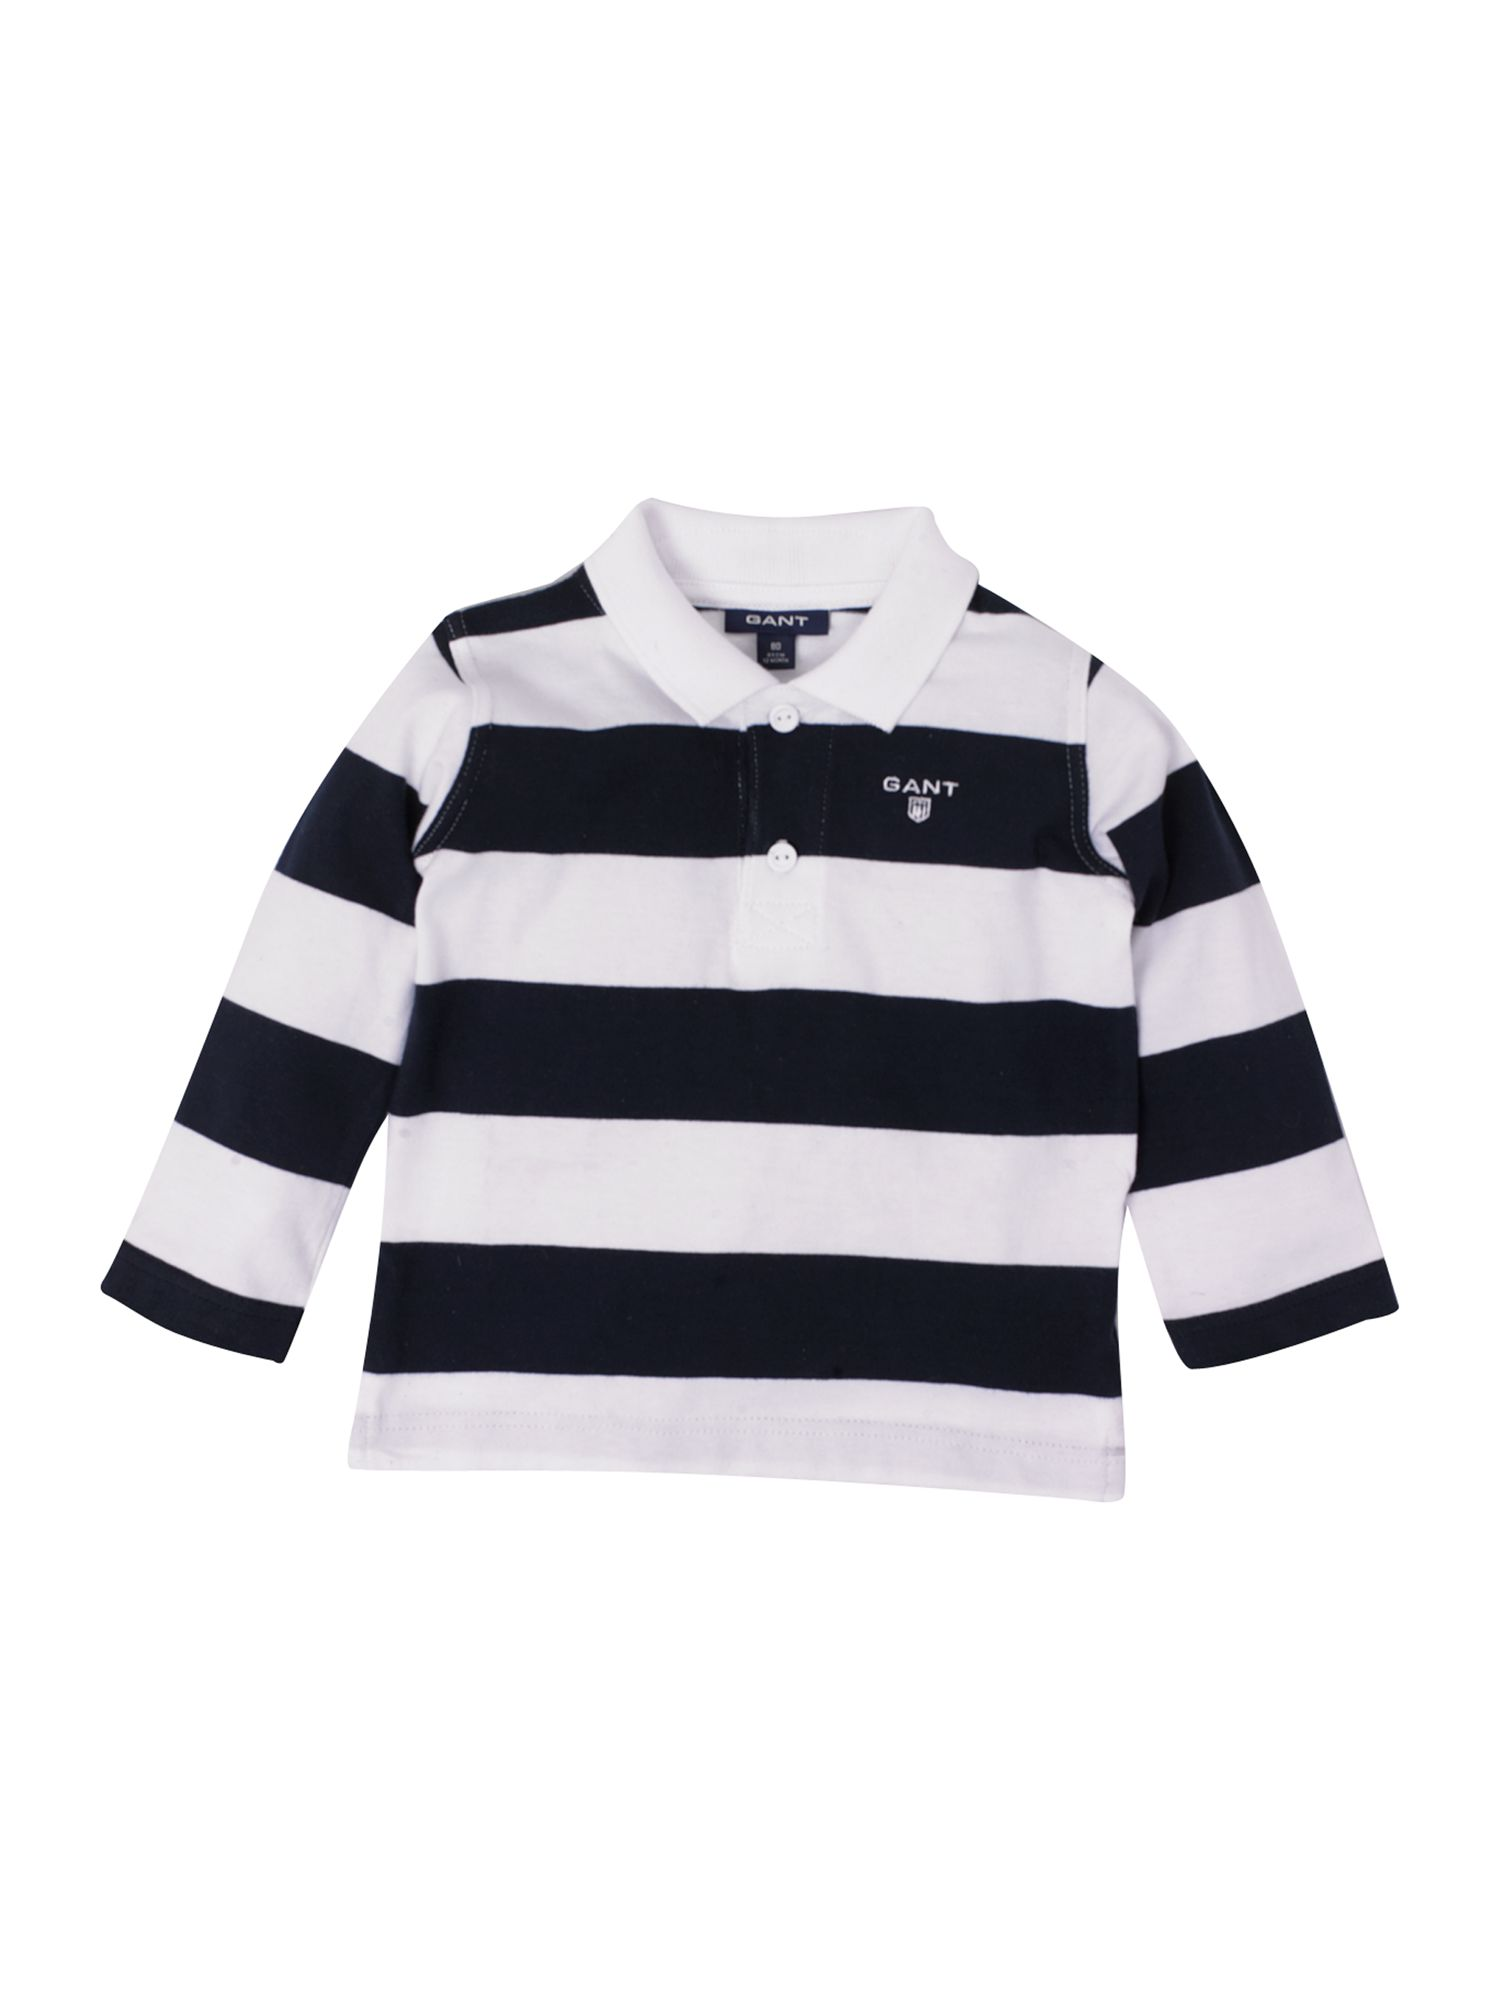 Long-sleeved block striped rugby shirt,